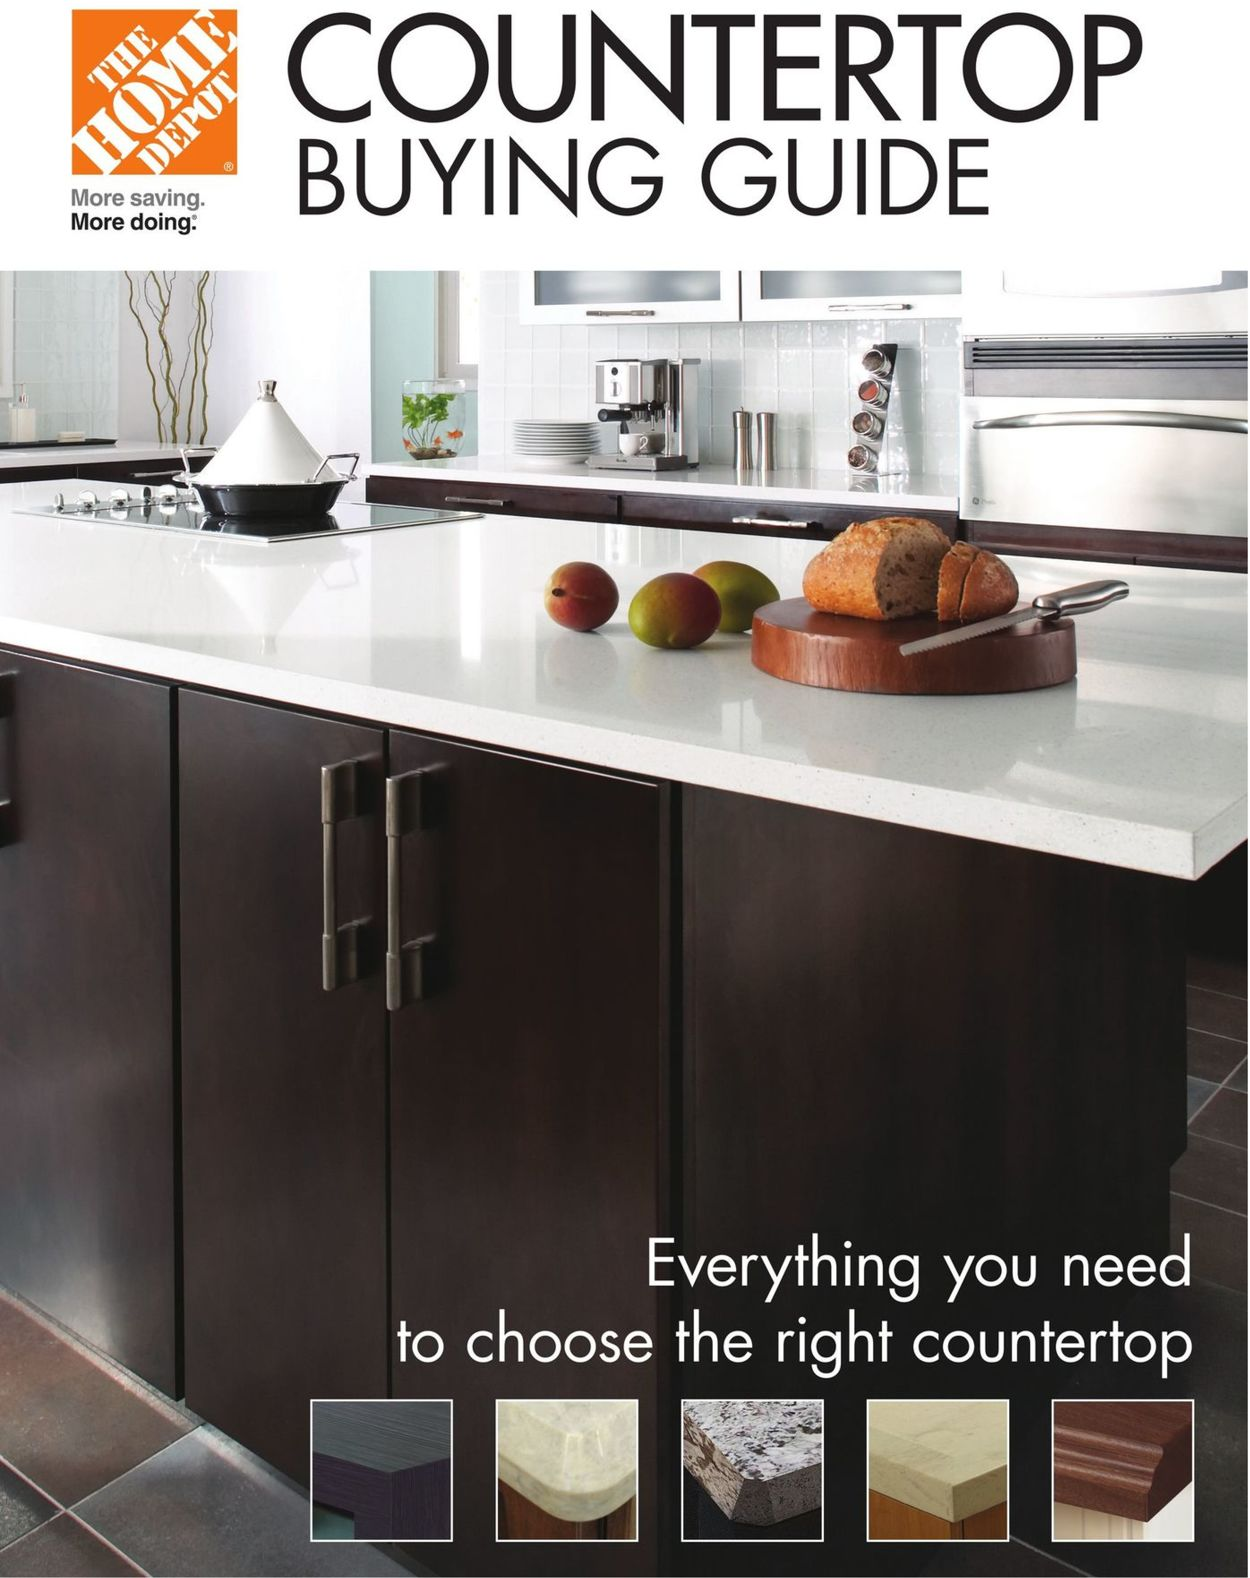 Home Depot Buying Guide 2021 Flyer - 01/01-12/31/2021